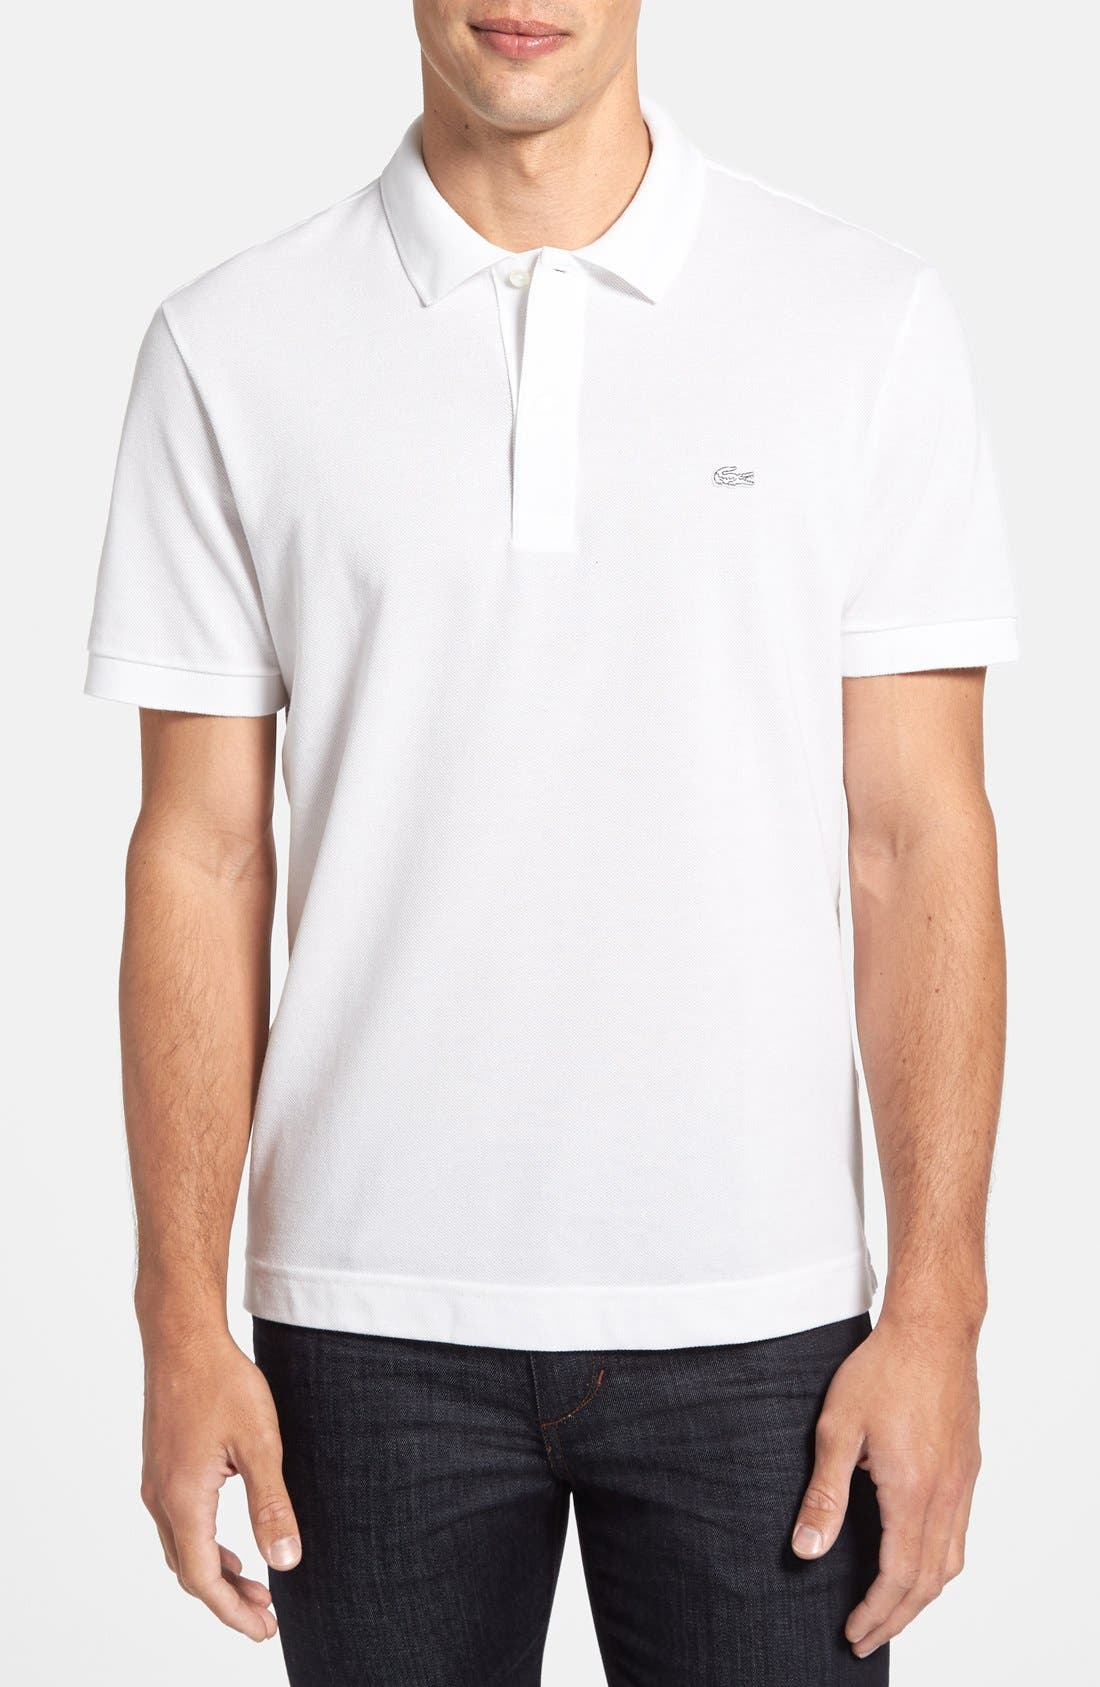 Main Image - Lacoste 'White Croc' Regular Fit Piqué Polo